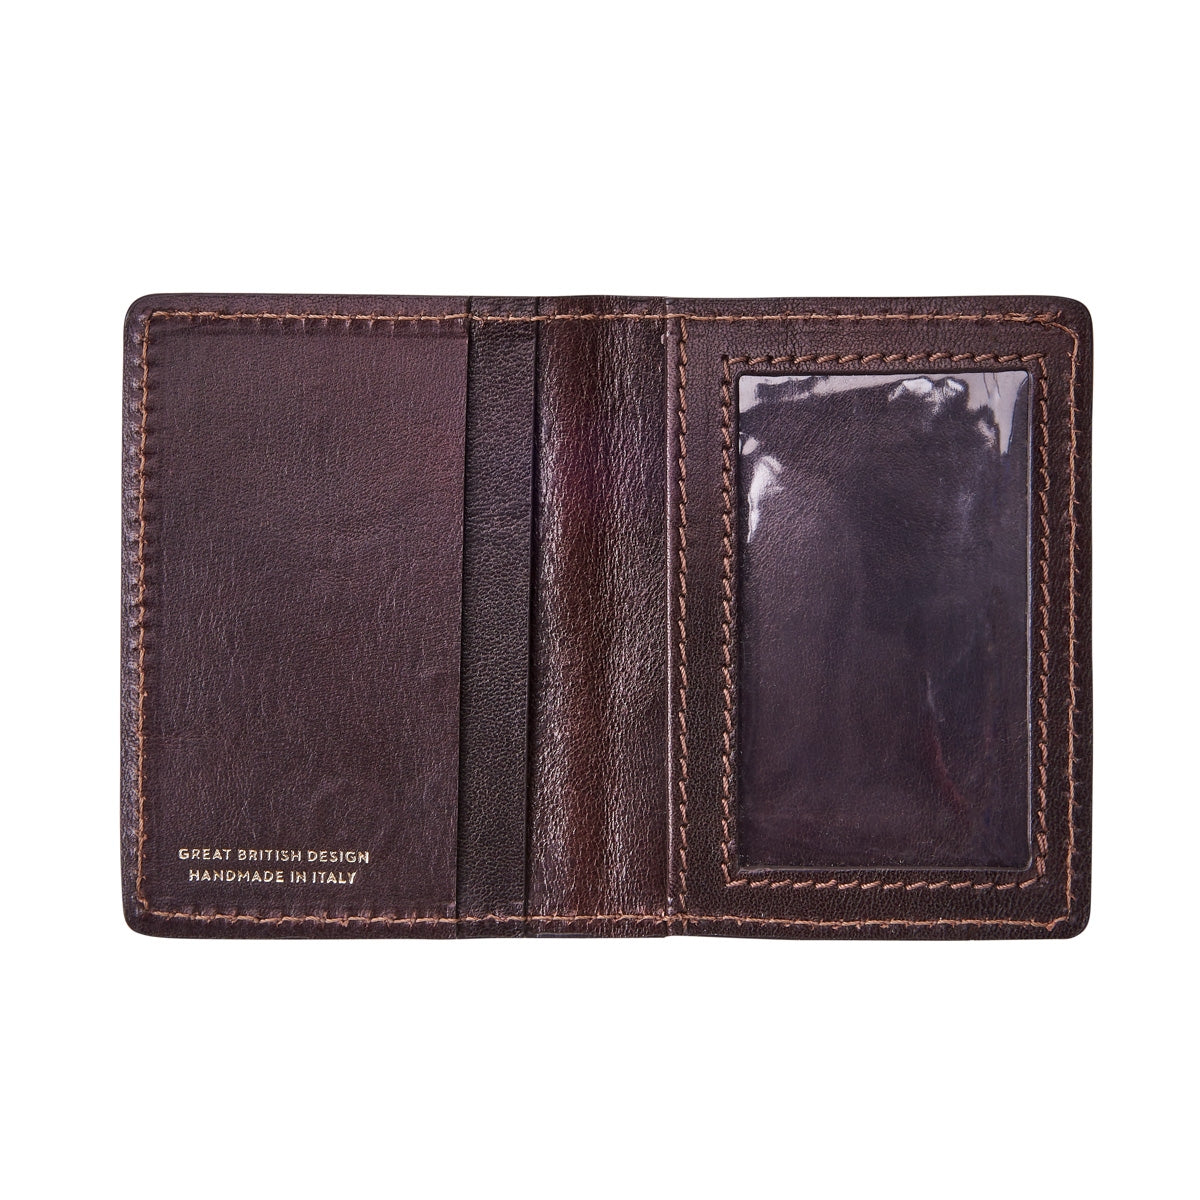 Image 2 of the 'Vallata' Brown Veg-Tanned Leather Oyster Card Holder